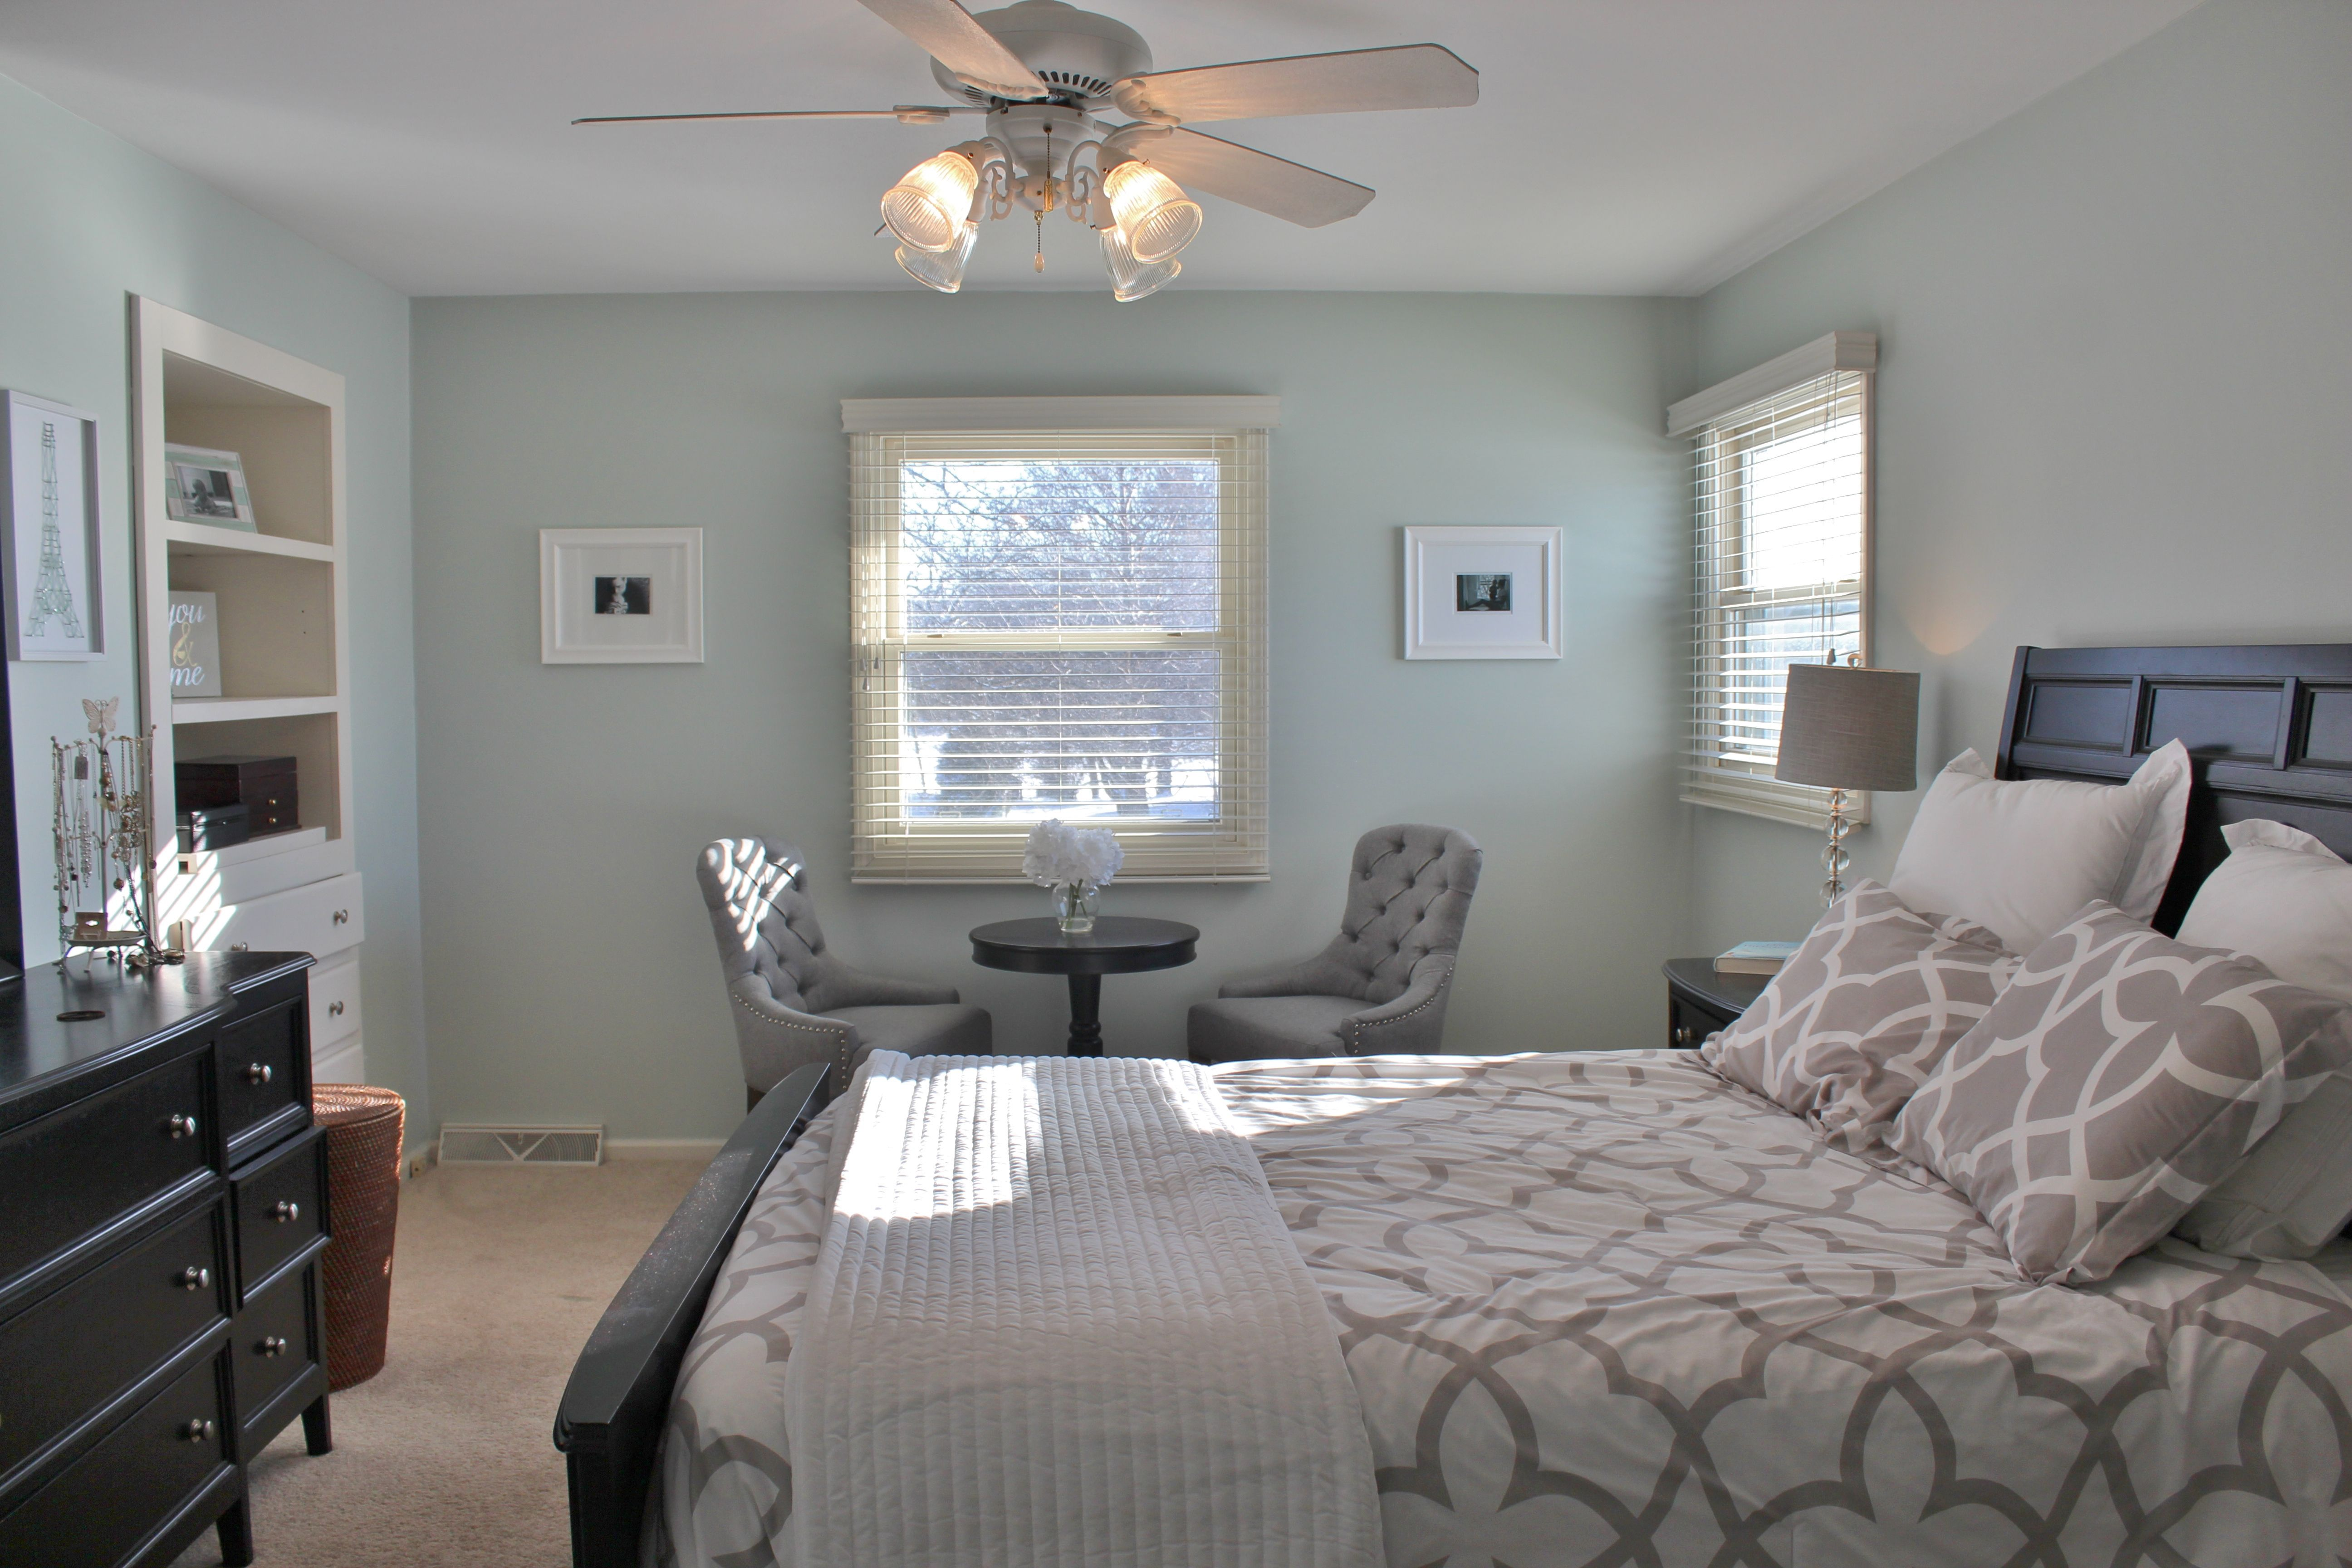 Best Pin On Home Before And After Decorating Home Decor Paint 640 x 480